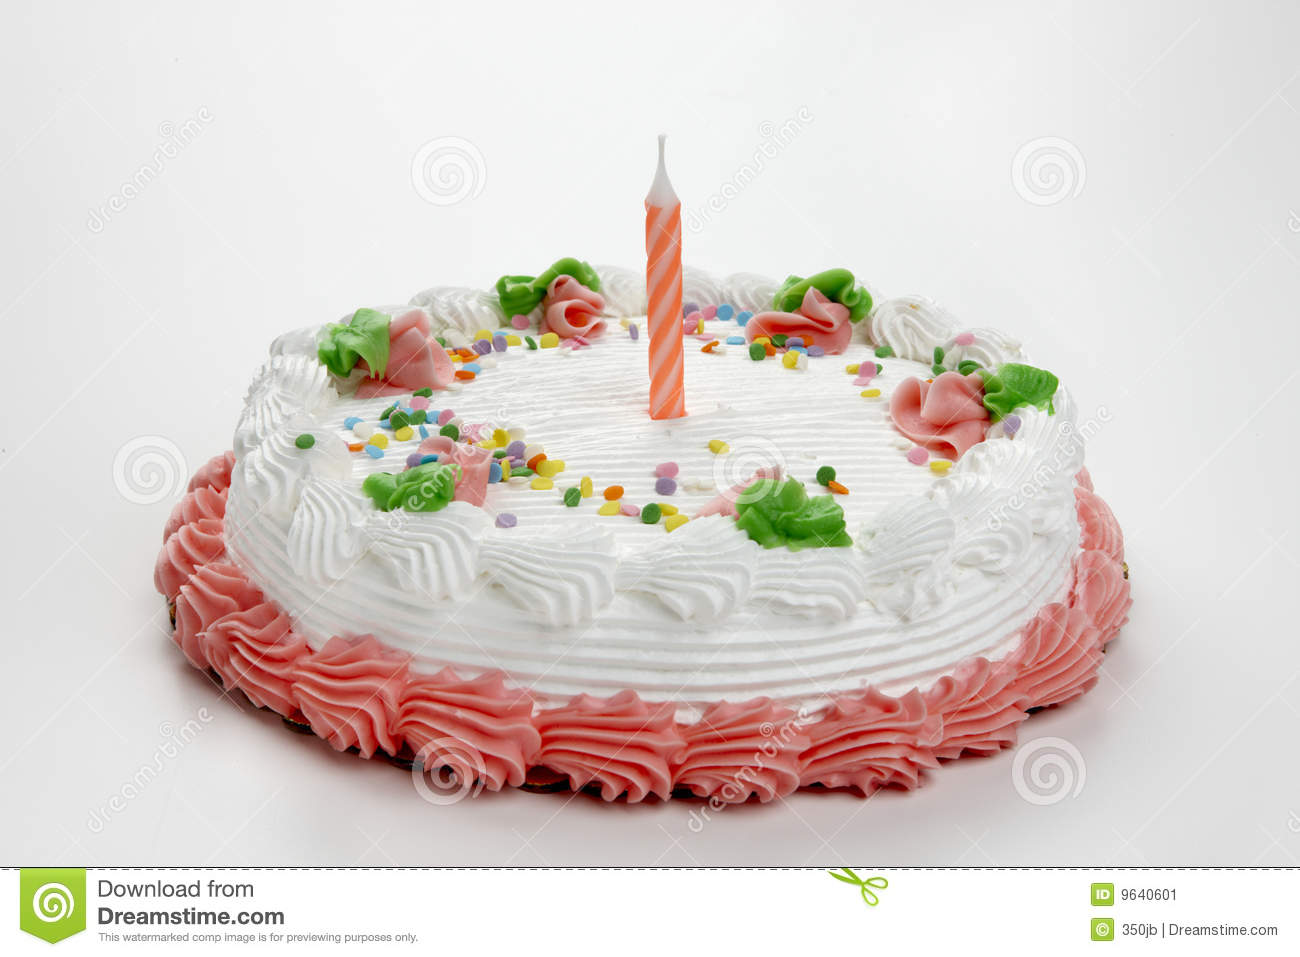 Birthday Cake With Candle Stock Image - Image: 9640601